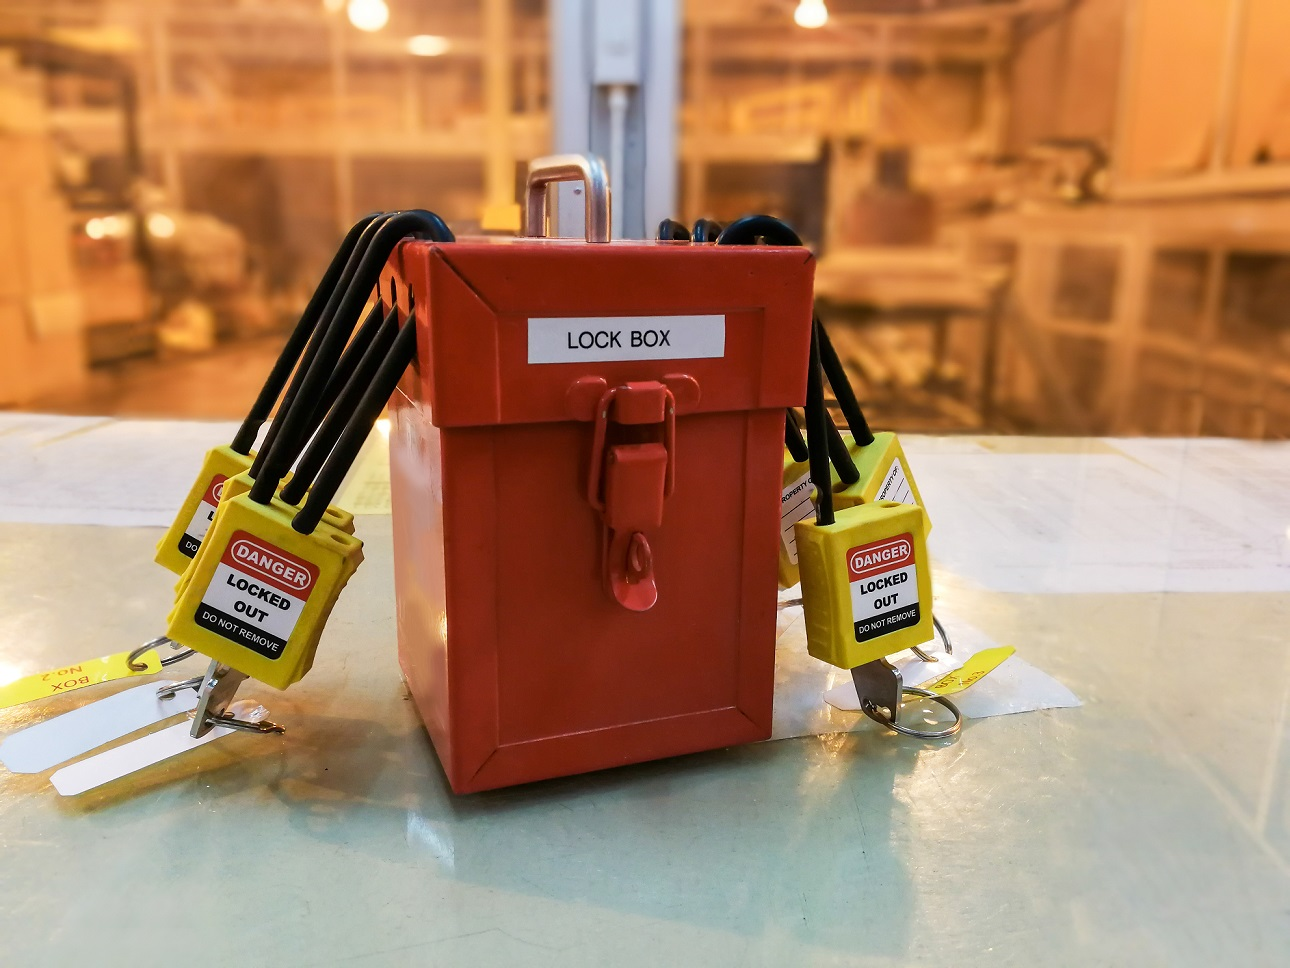 Lockout Tagout Audits – What is Required?